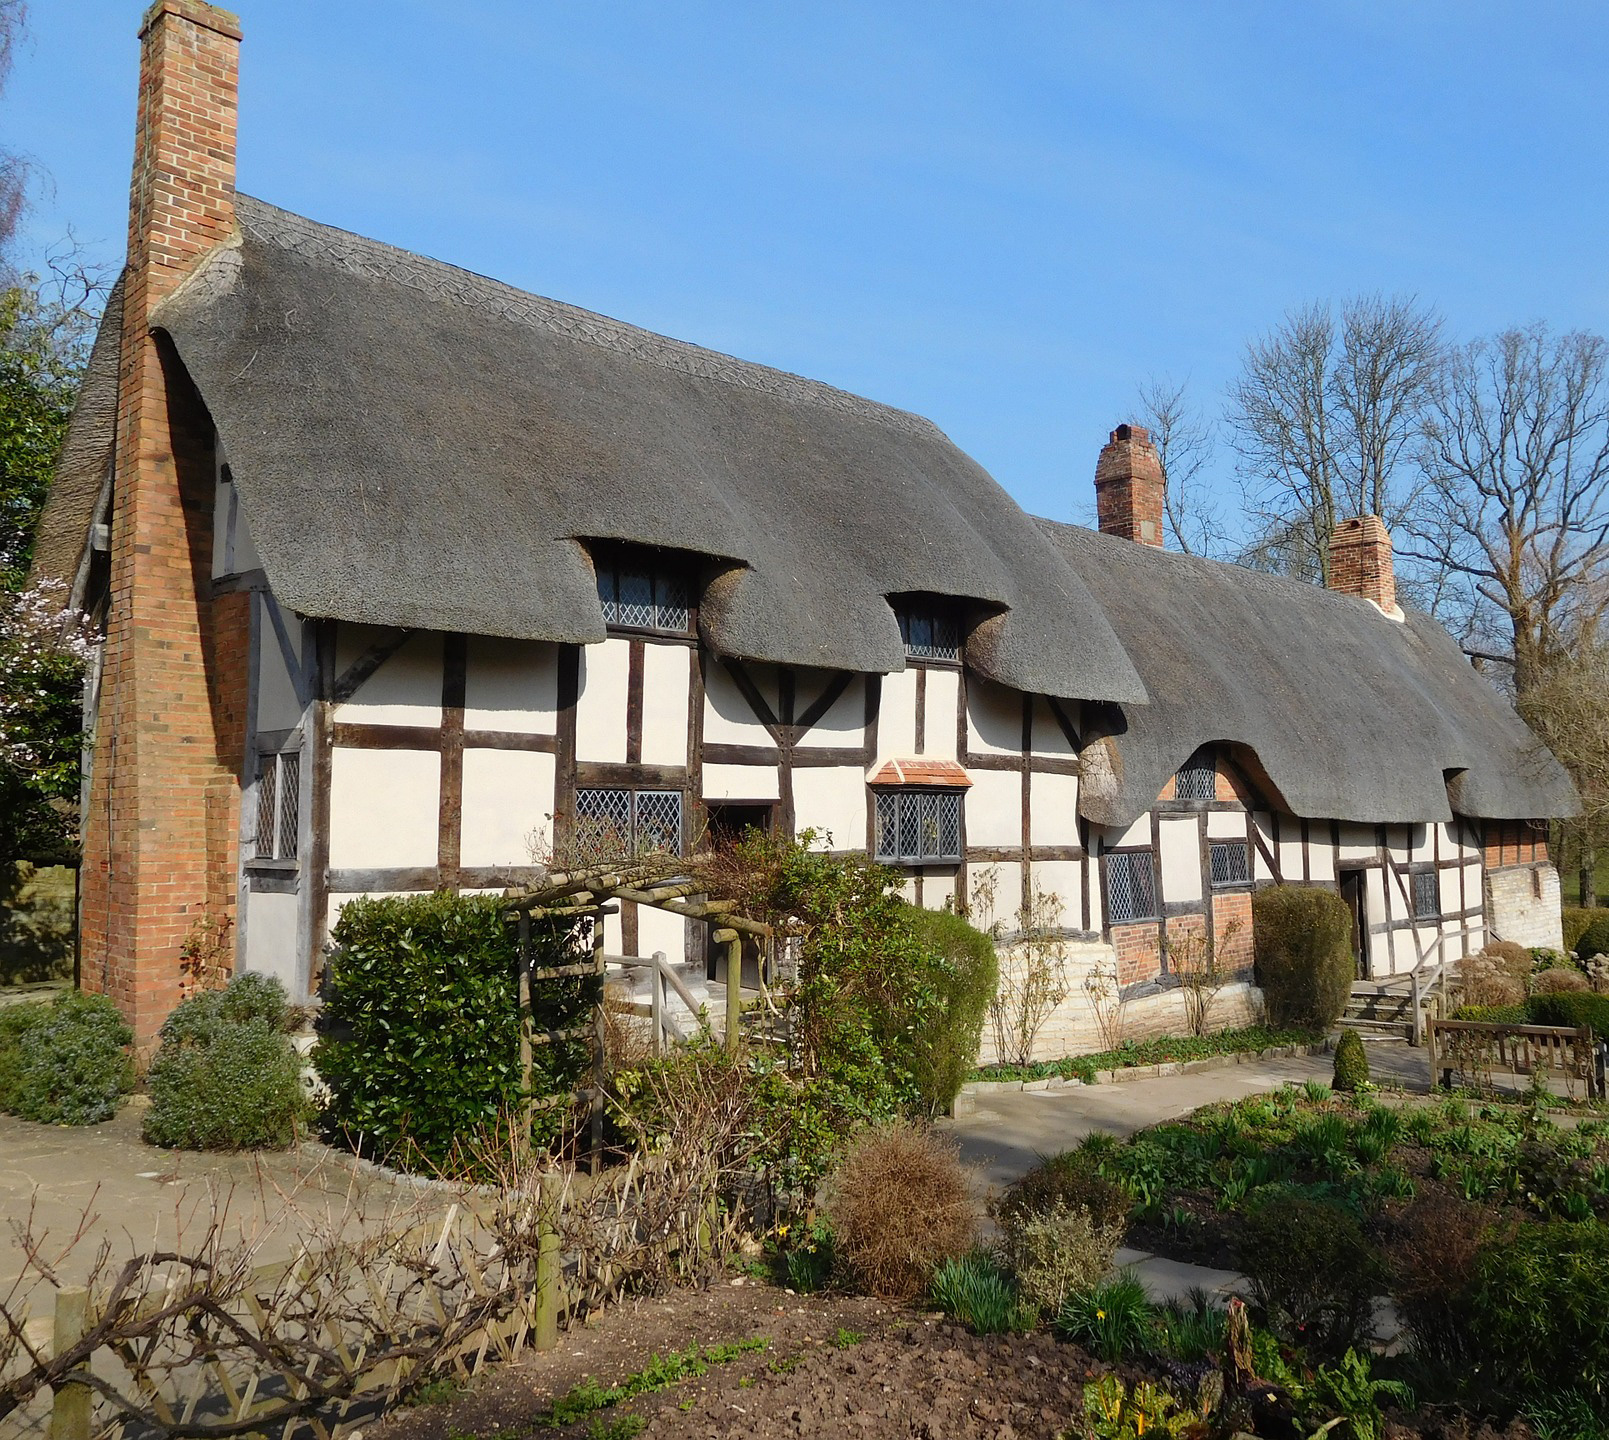 Women's Travel Club England & Wales Tour - Stratford-Upon-Avon